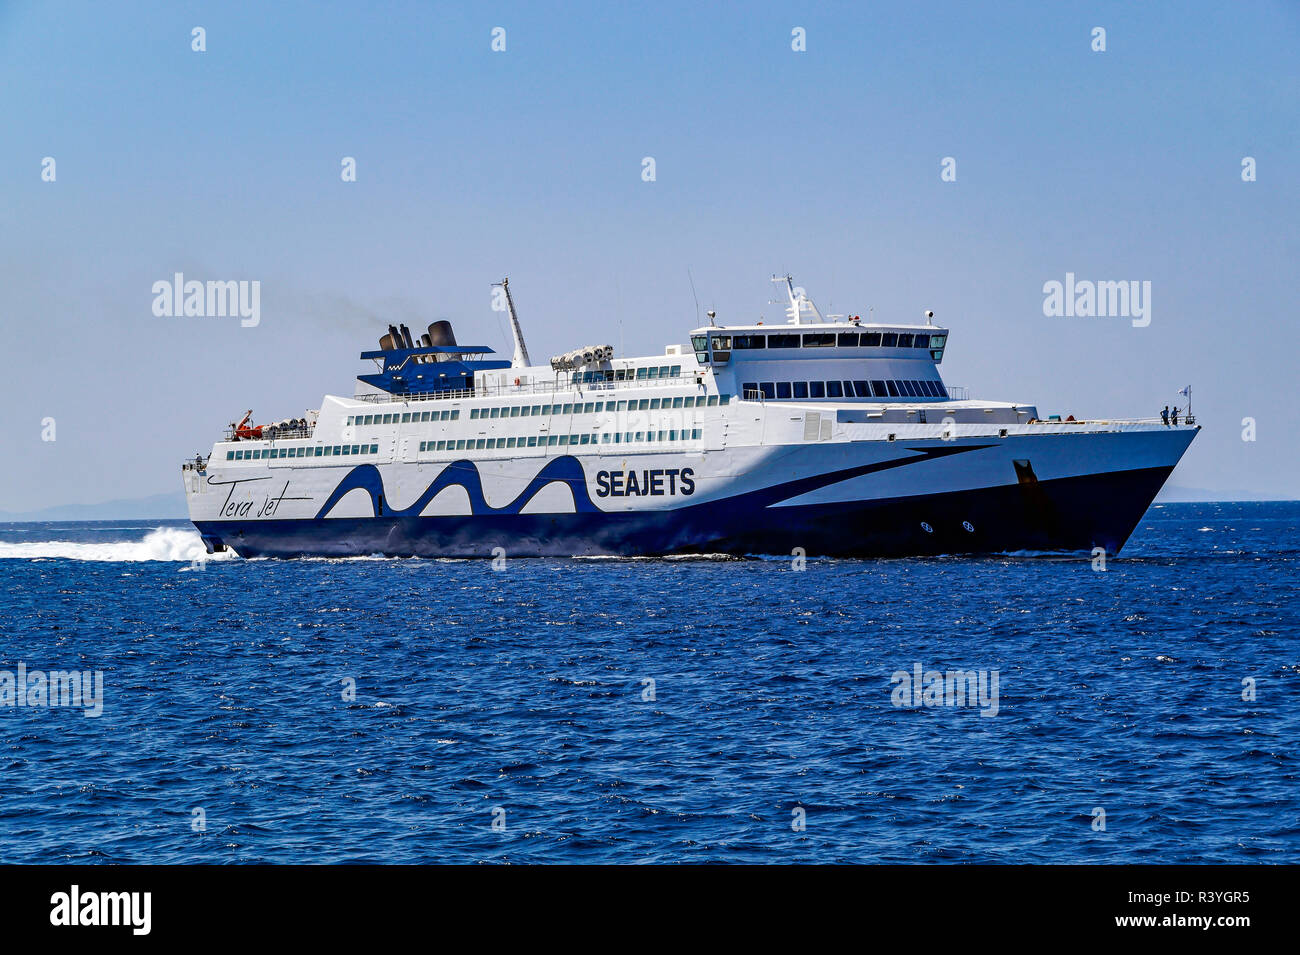 Sea Jets Tera Jet car and passenger ferry arrives at harbour Mykonos town on island Mykonos in the Cyclades group in the Aegean Sea Greece - Stock Image